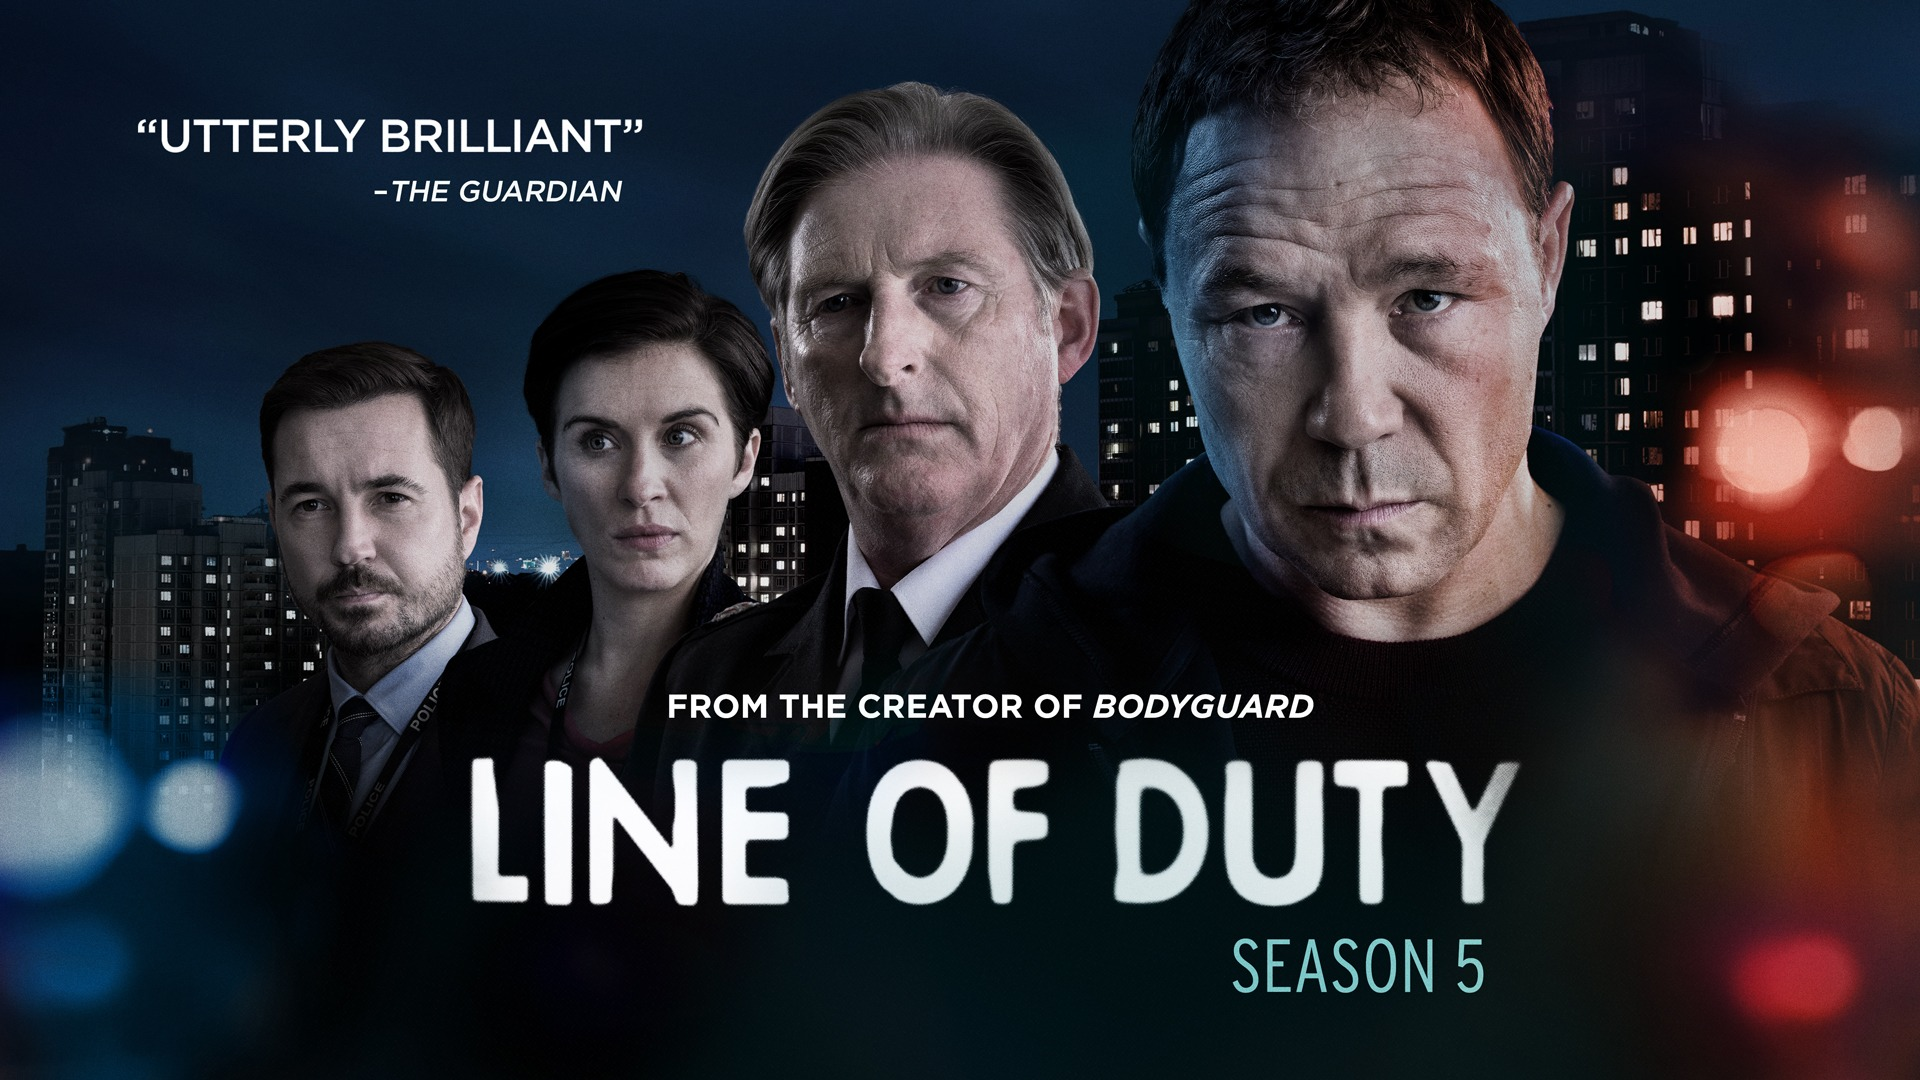 Line of Duty Series 5: Release Date, Cast, Plot; All About Detective Fiction-Thriller Series